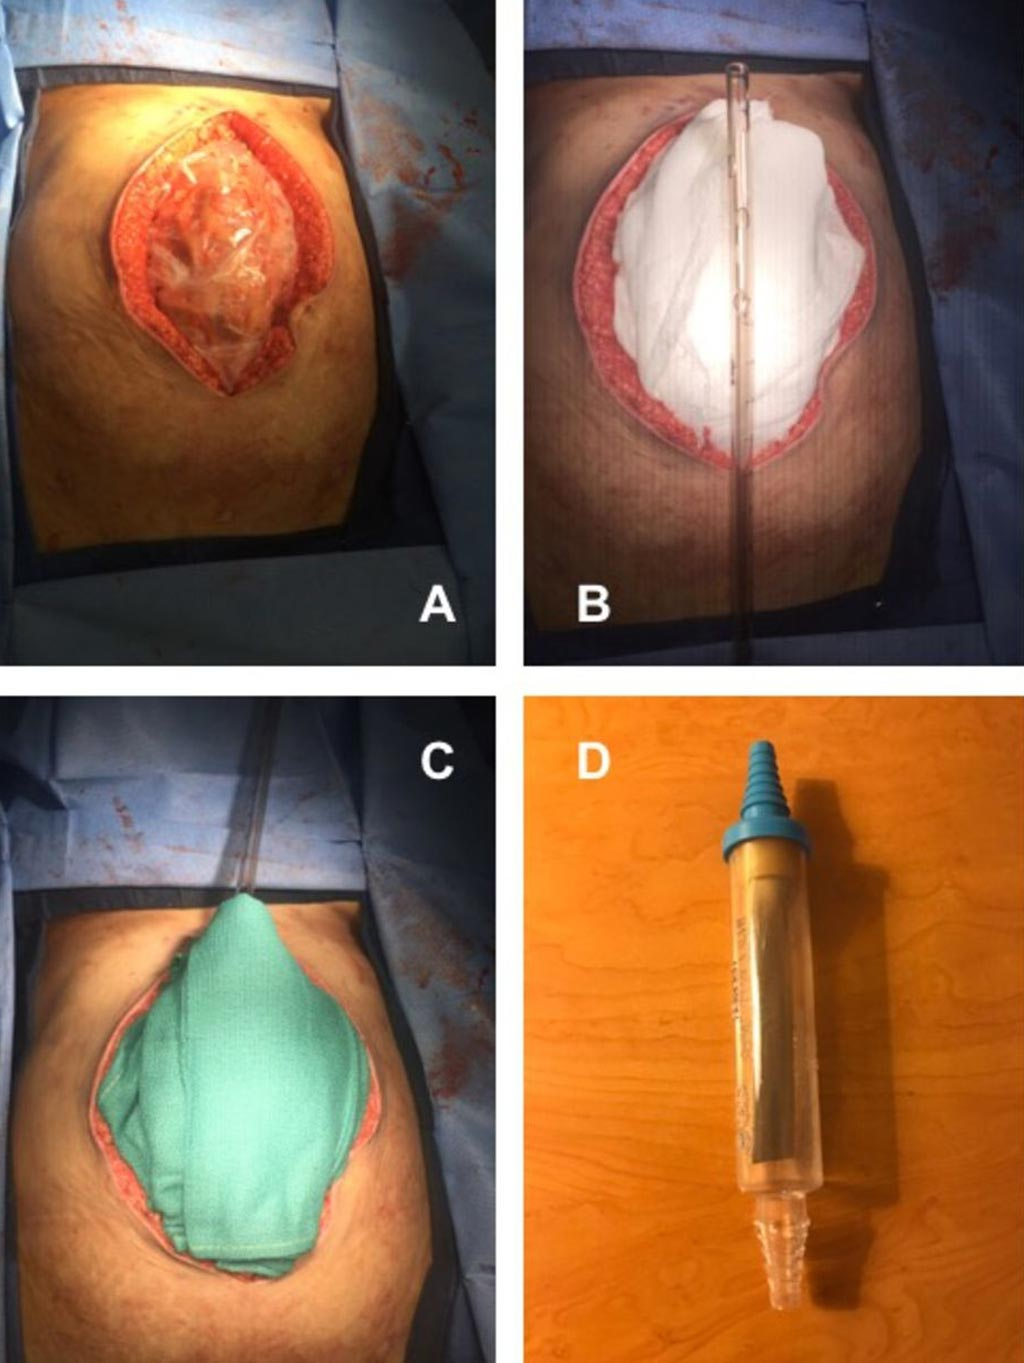 Image: Temporary abdominal closure using NPWT provides a solution for damage control in austere settings (Photo courtesy of Edwin Faulconer/ Derriford Hospital).